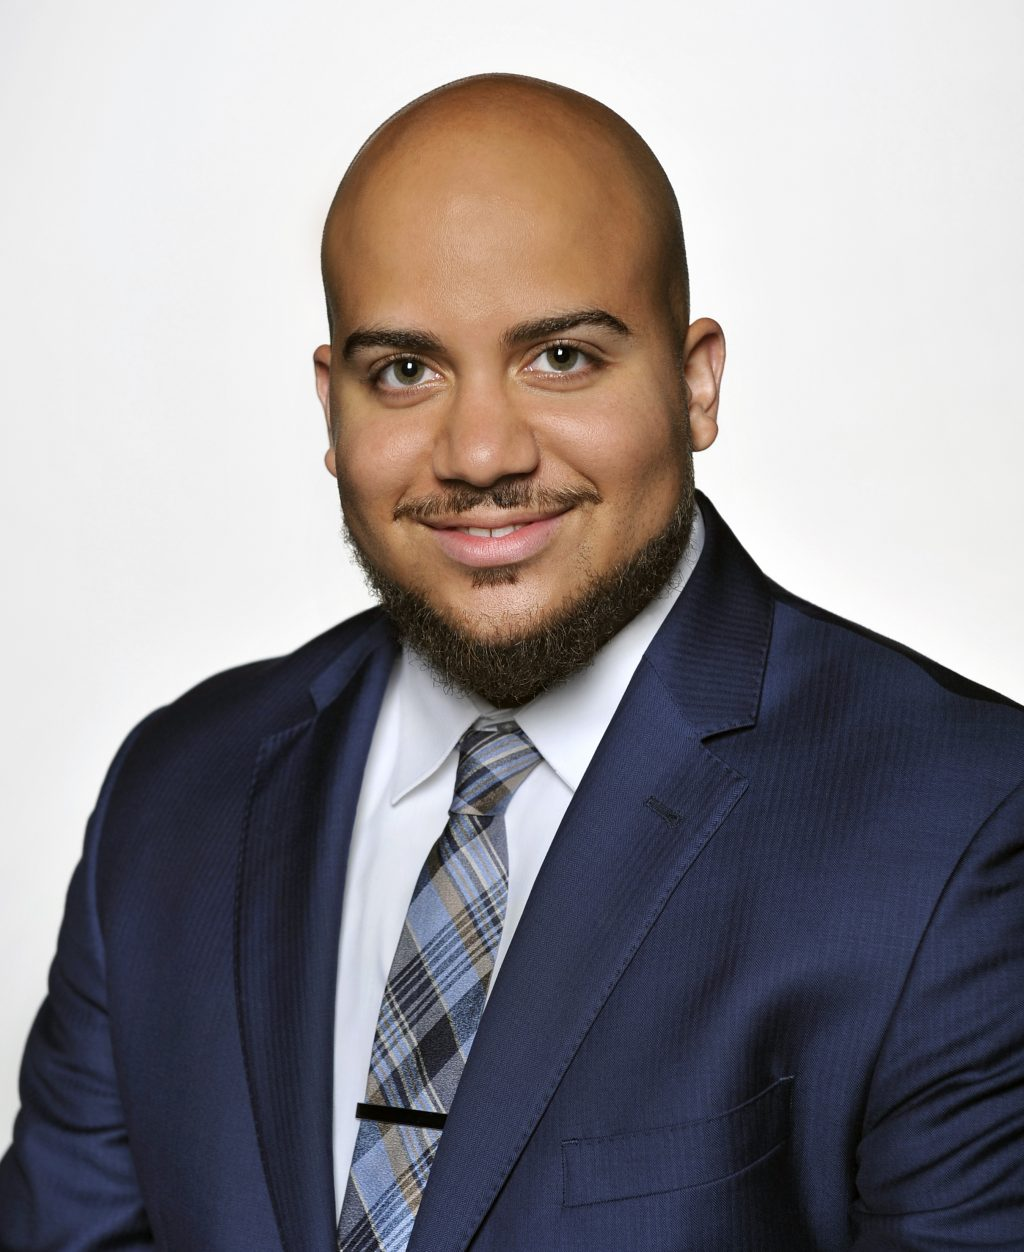 Black Women's Democratic Club Endorses Isaac Bryan For California's 54th Assembly District In Upcoming Special Election